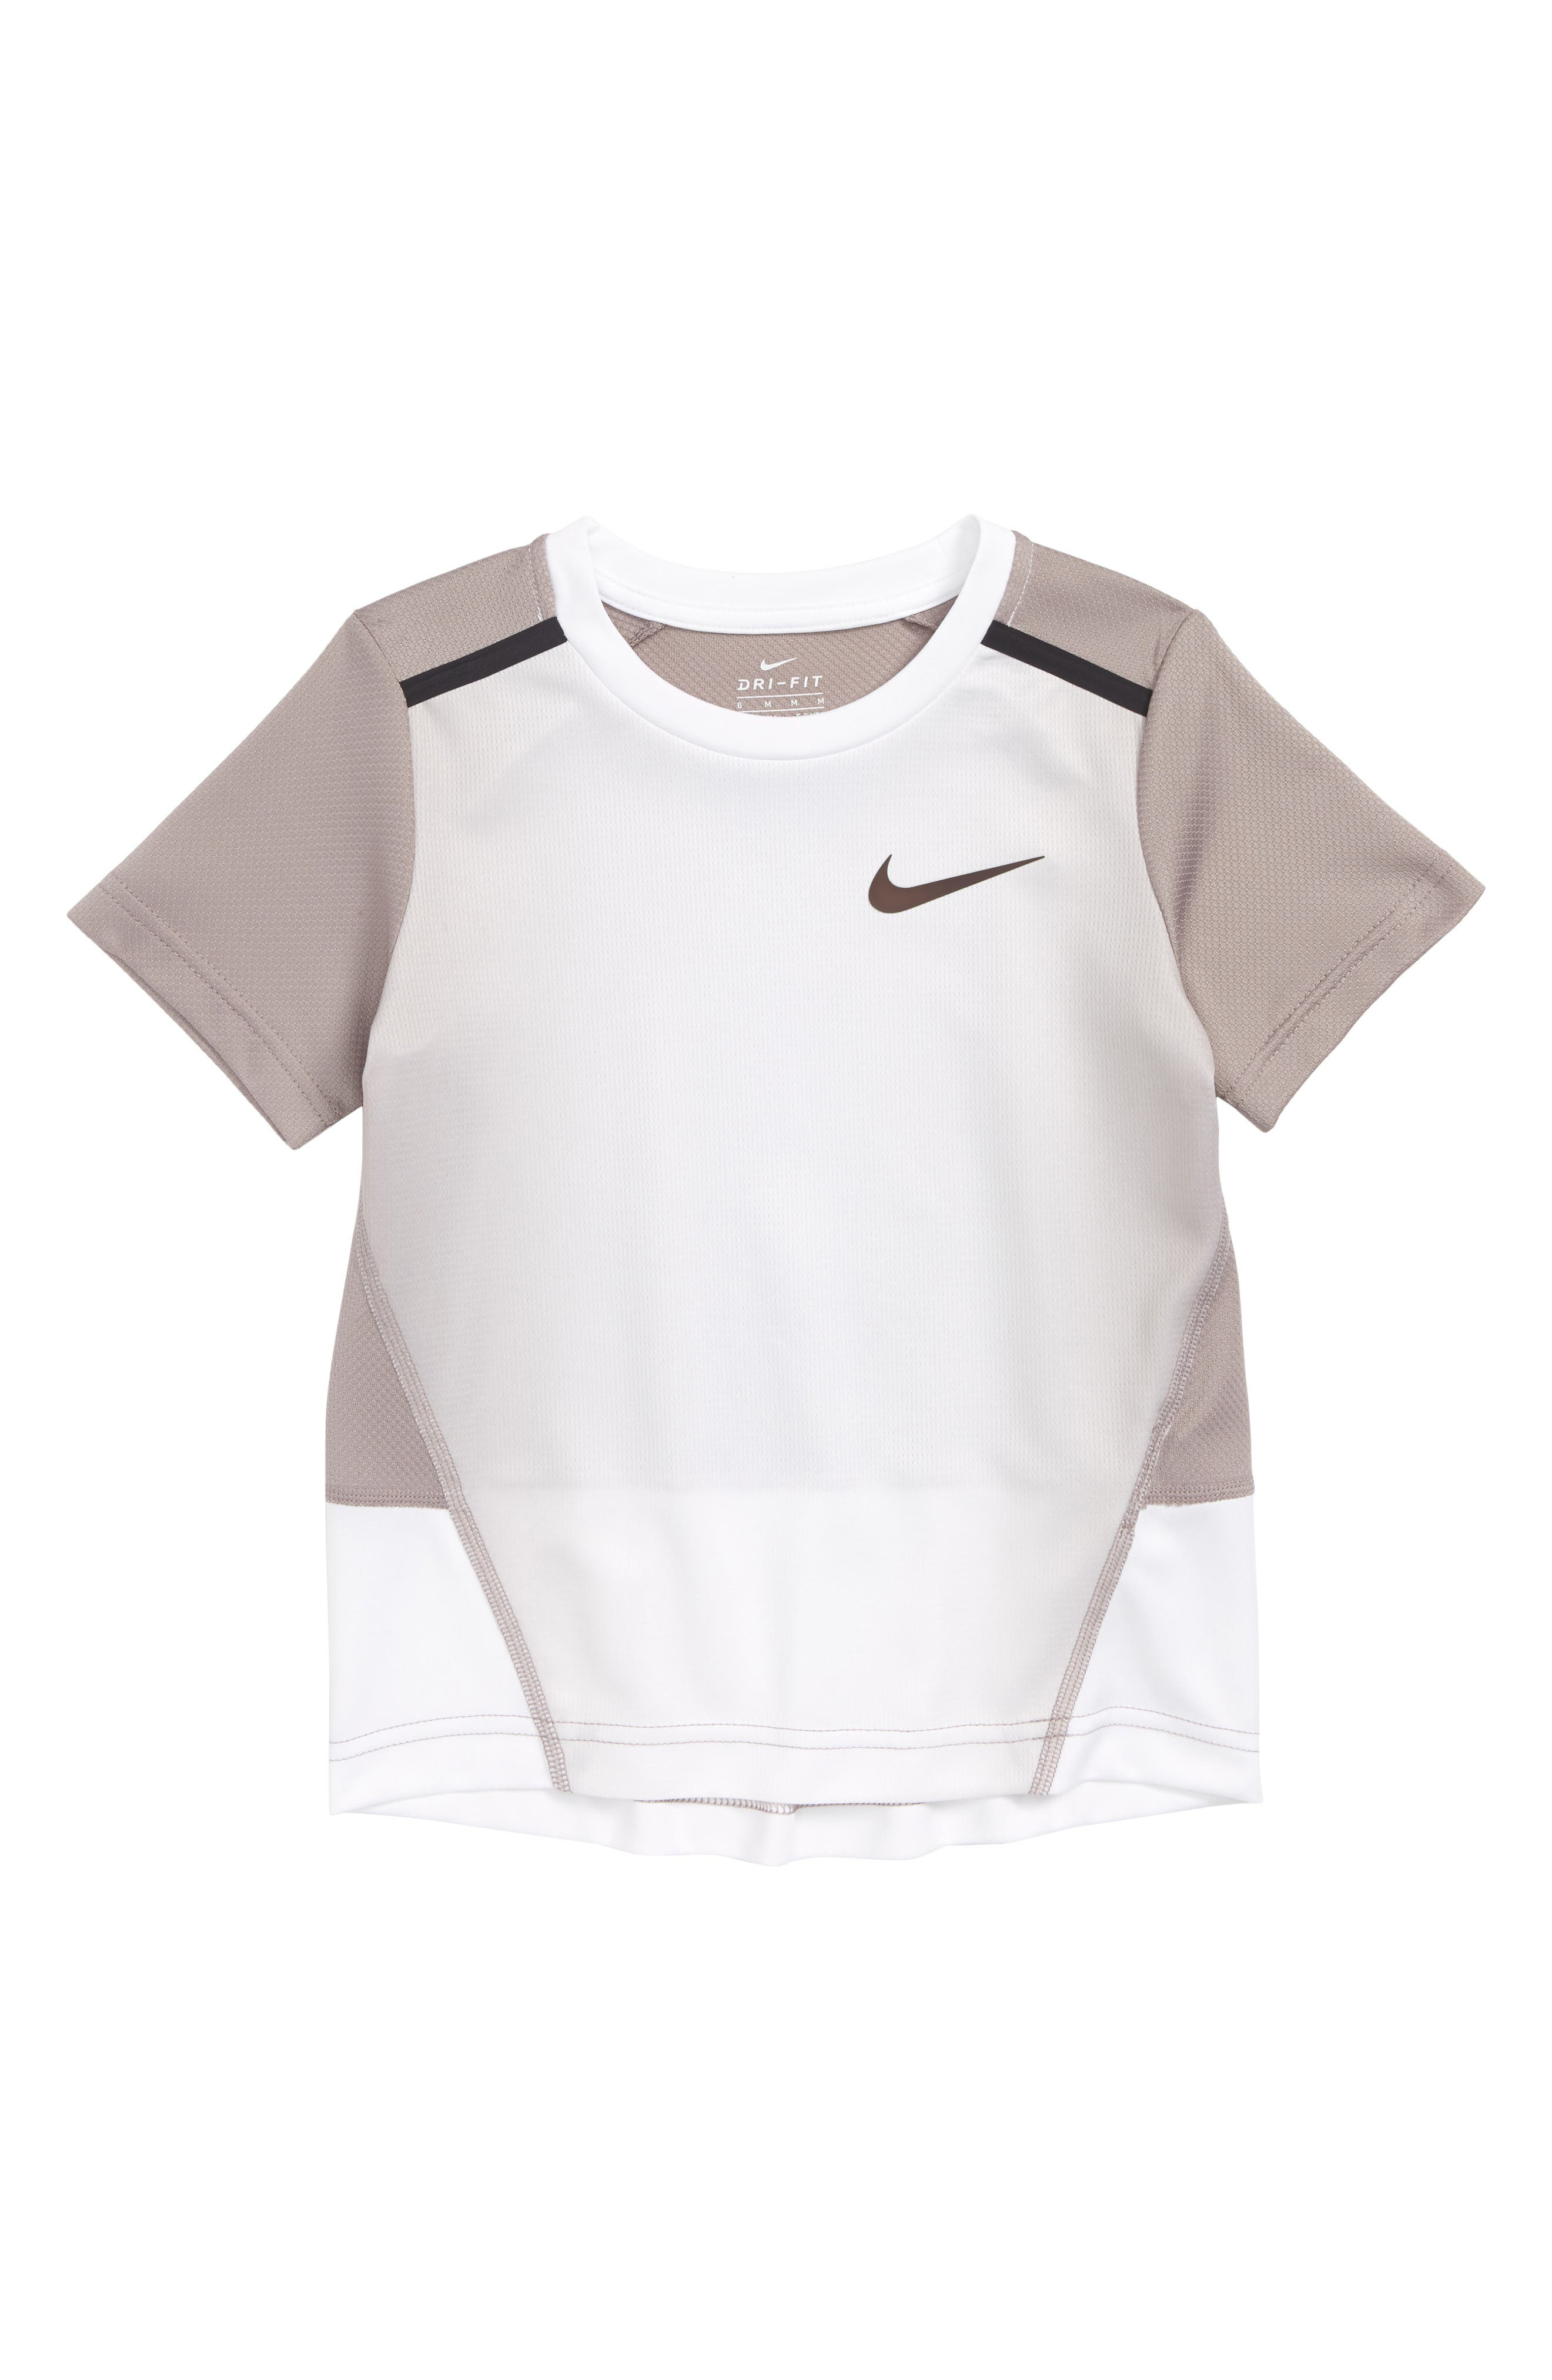 Dry INSTACOOL Shirt,                             Main thumbnail 1, color,                             Atmosphere Gray